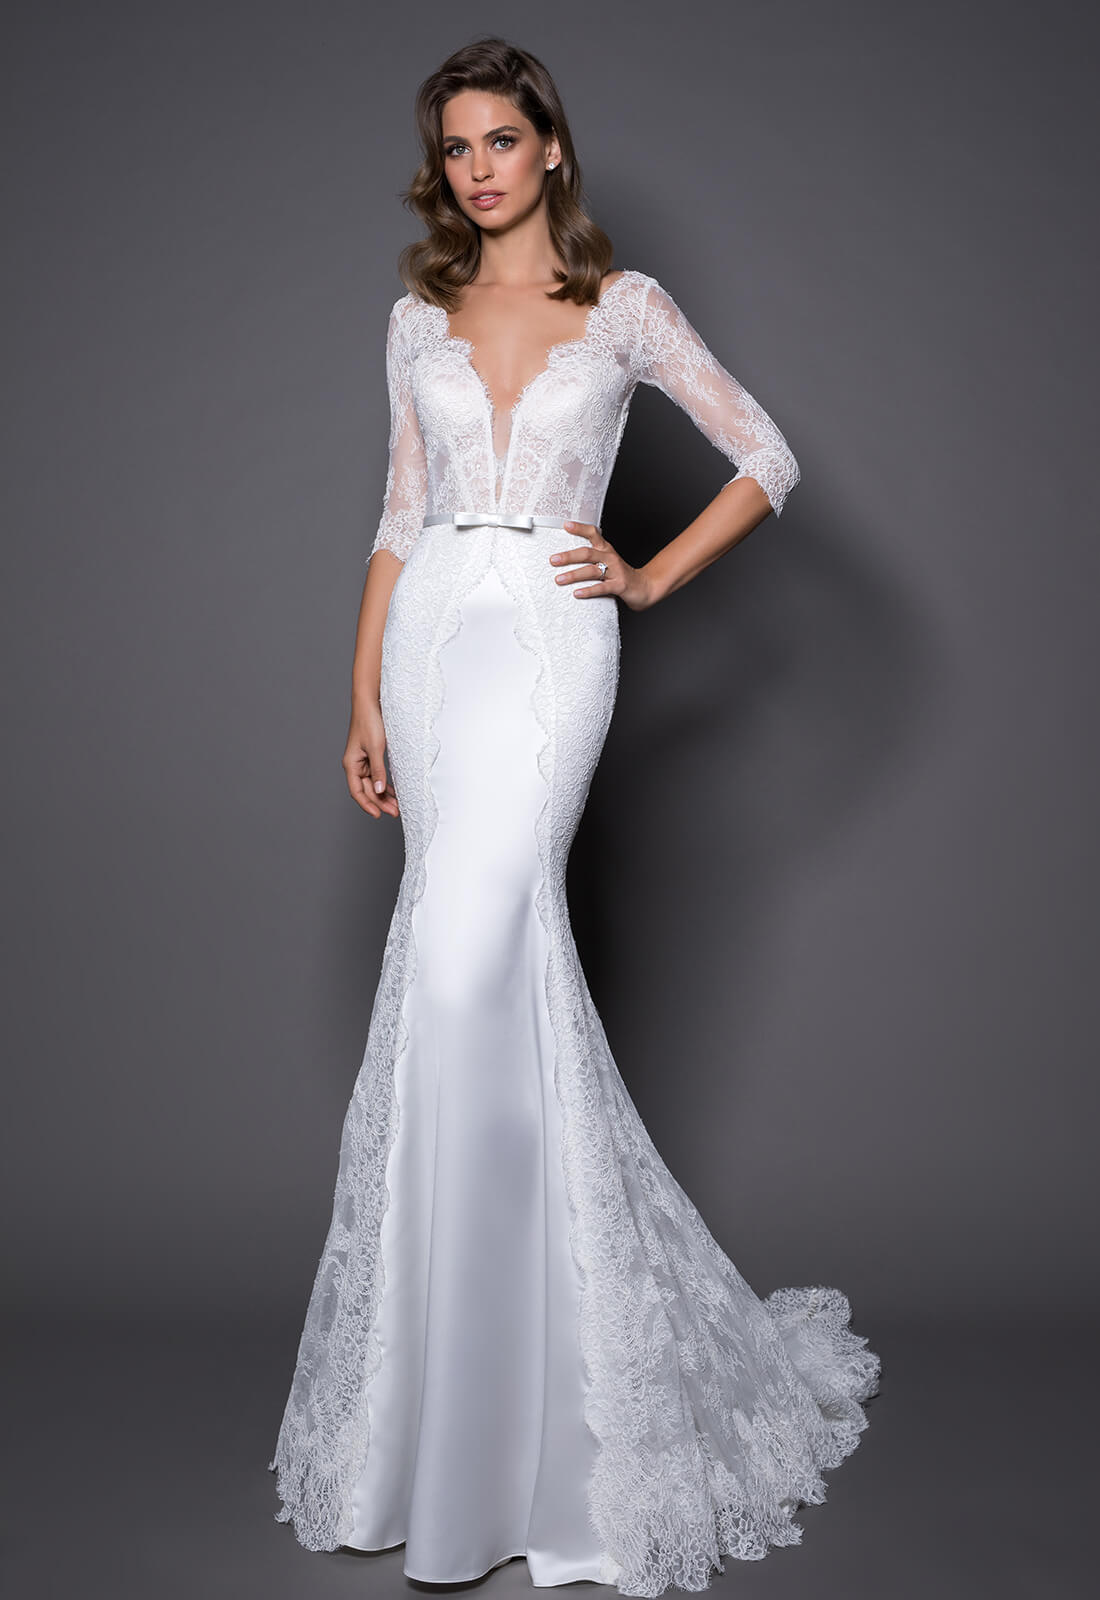 3 4 Sleeve Lace And Satin Wedding Dress With Covered